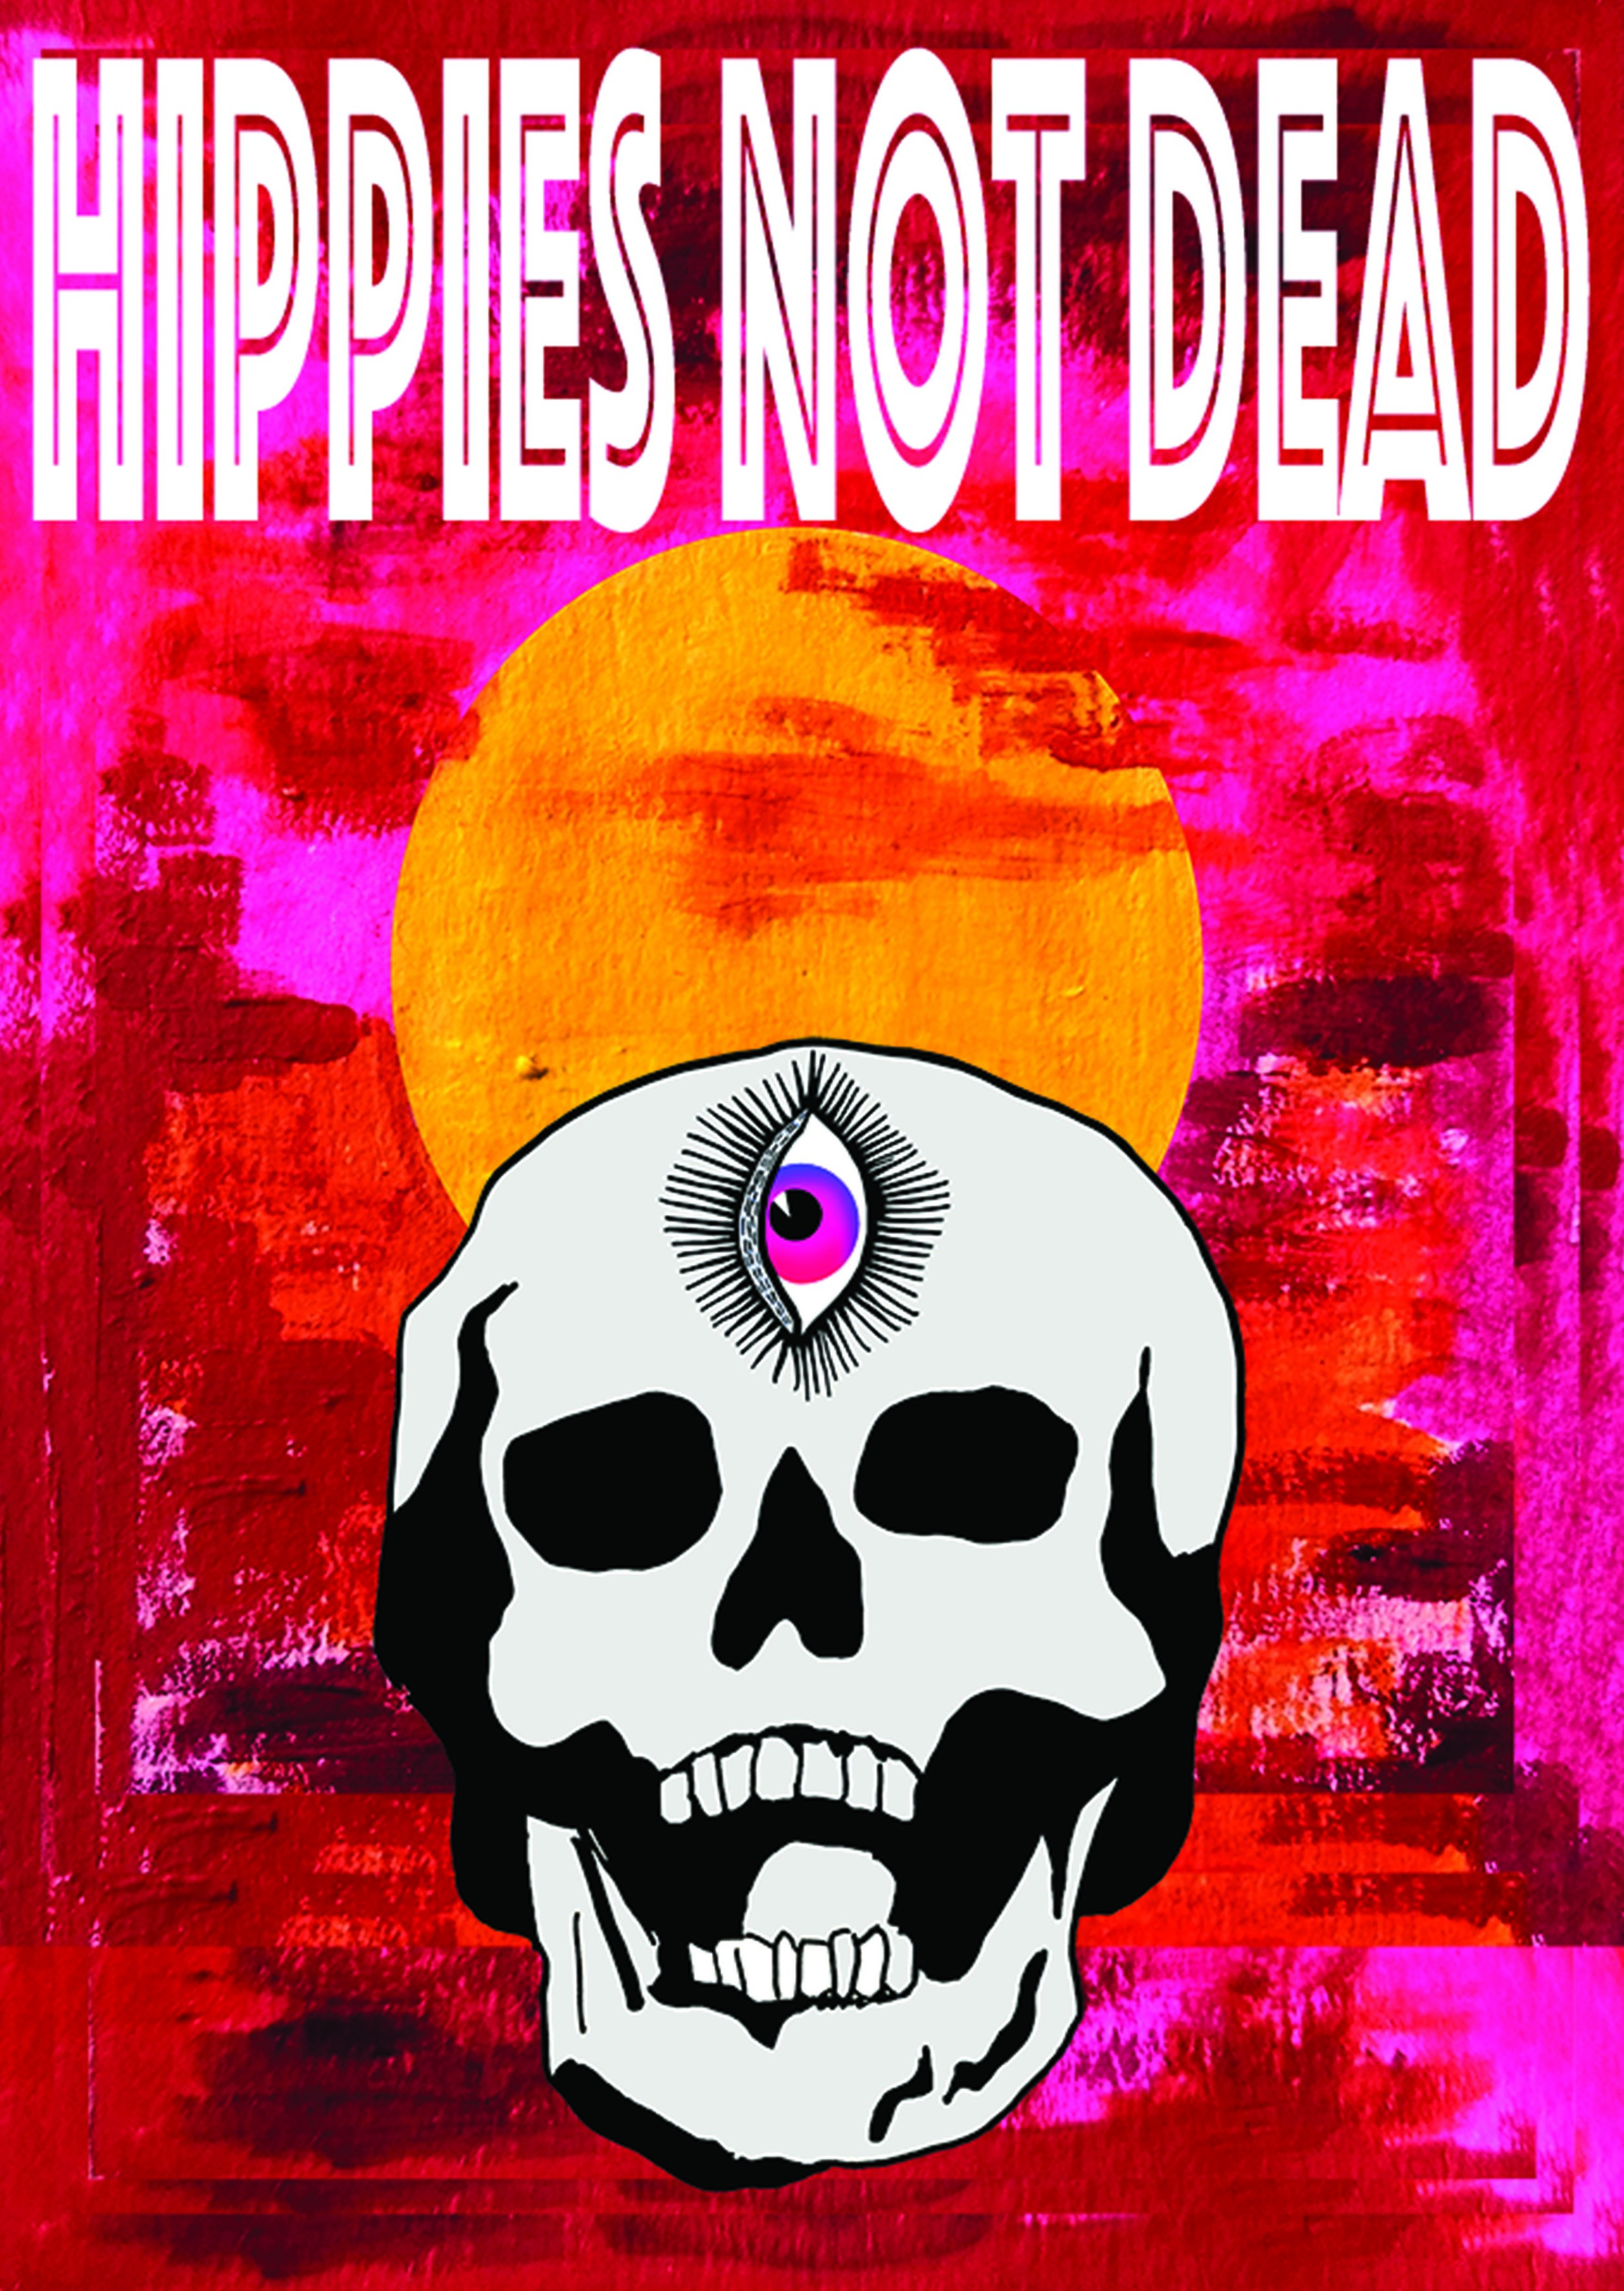 Hippies Not Dead Poster  €9.99–€14.99 Available in A4, A3